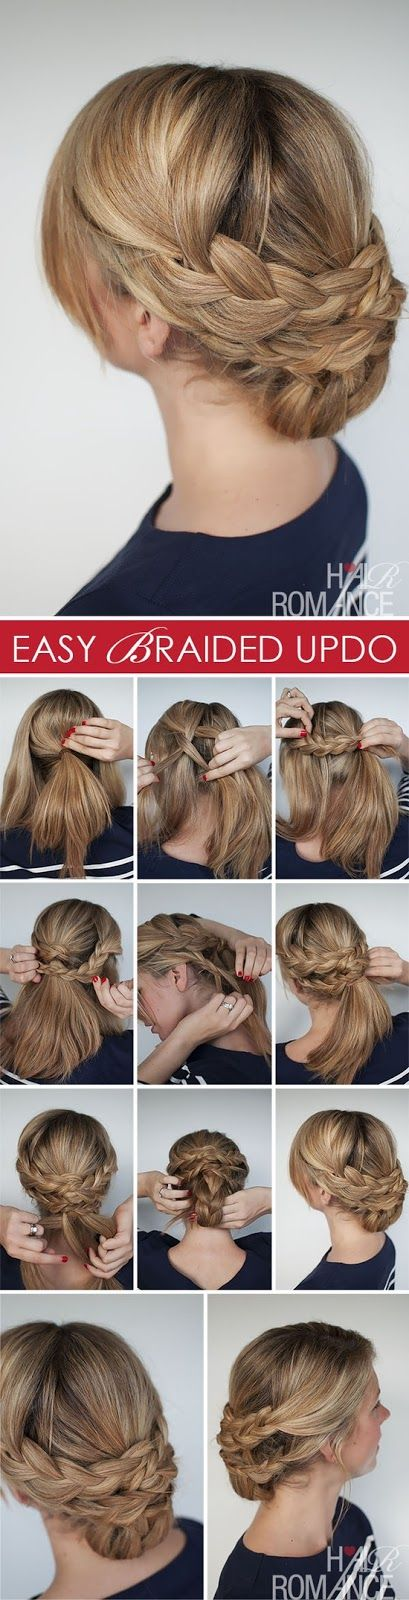 Pinterest Hairstyles: Еasy braided upstyle tutorial, now the girls just need to let me braid their hair......